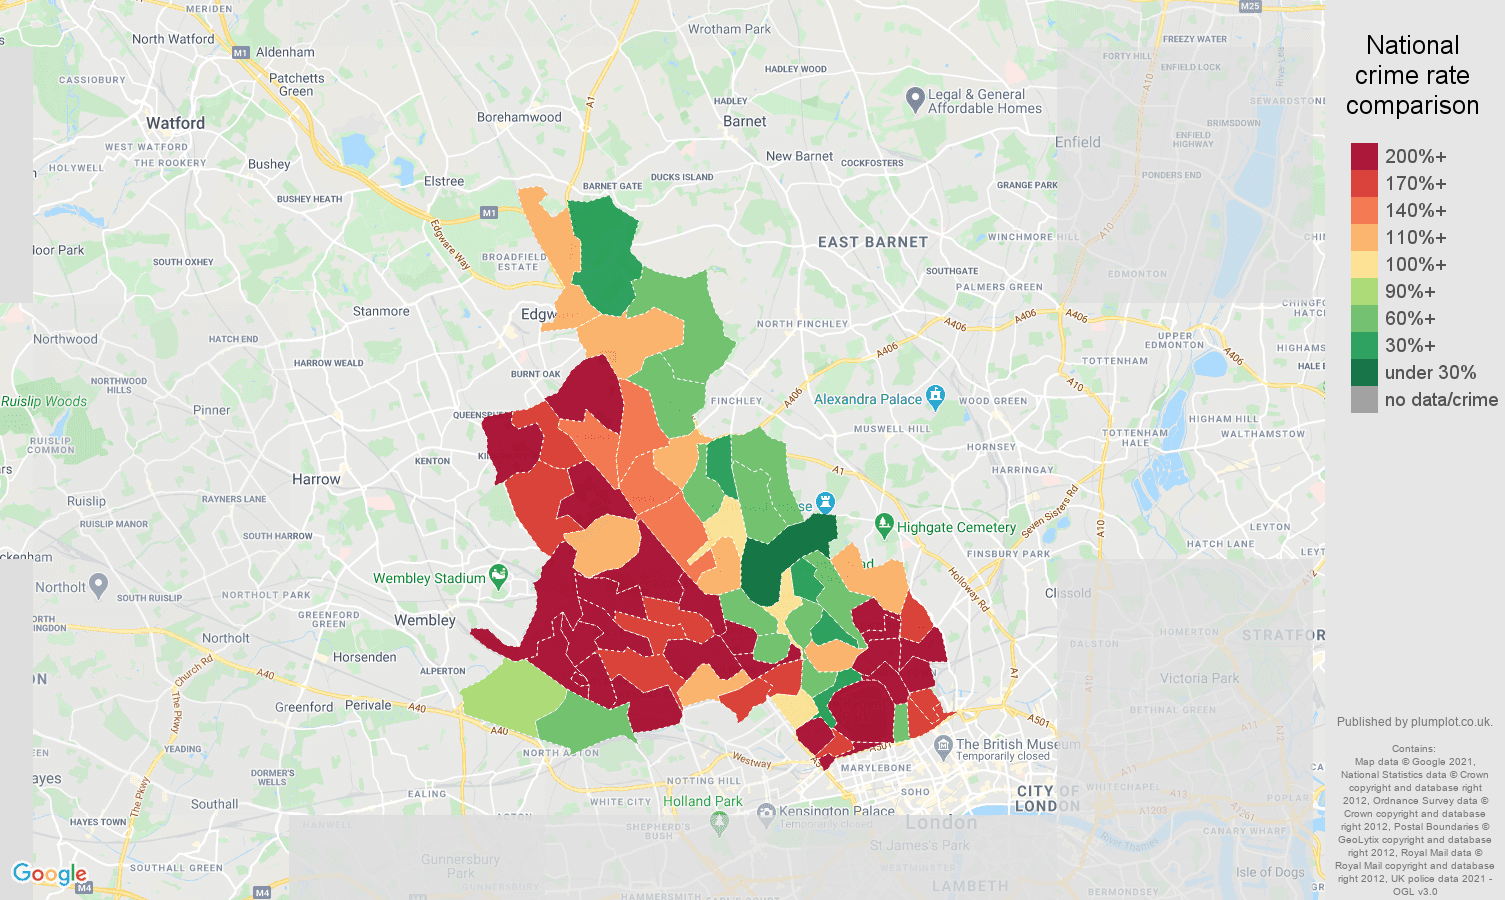 North West London drugs crime rate comparison map